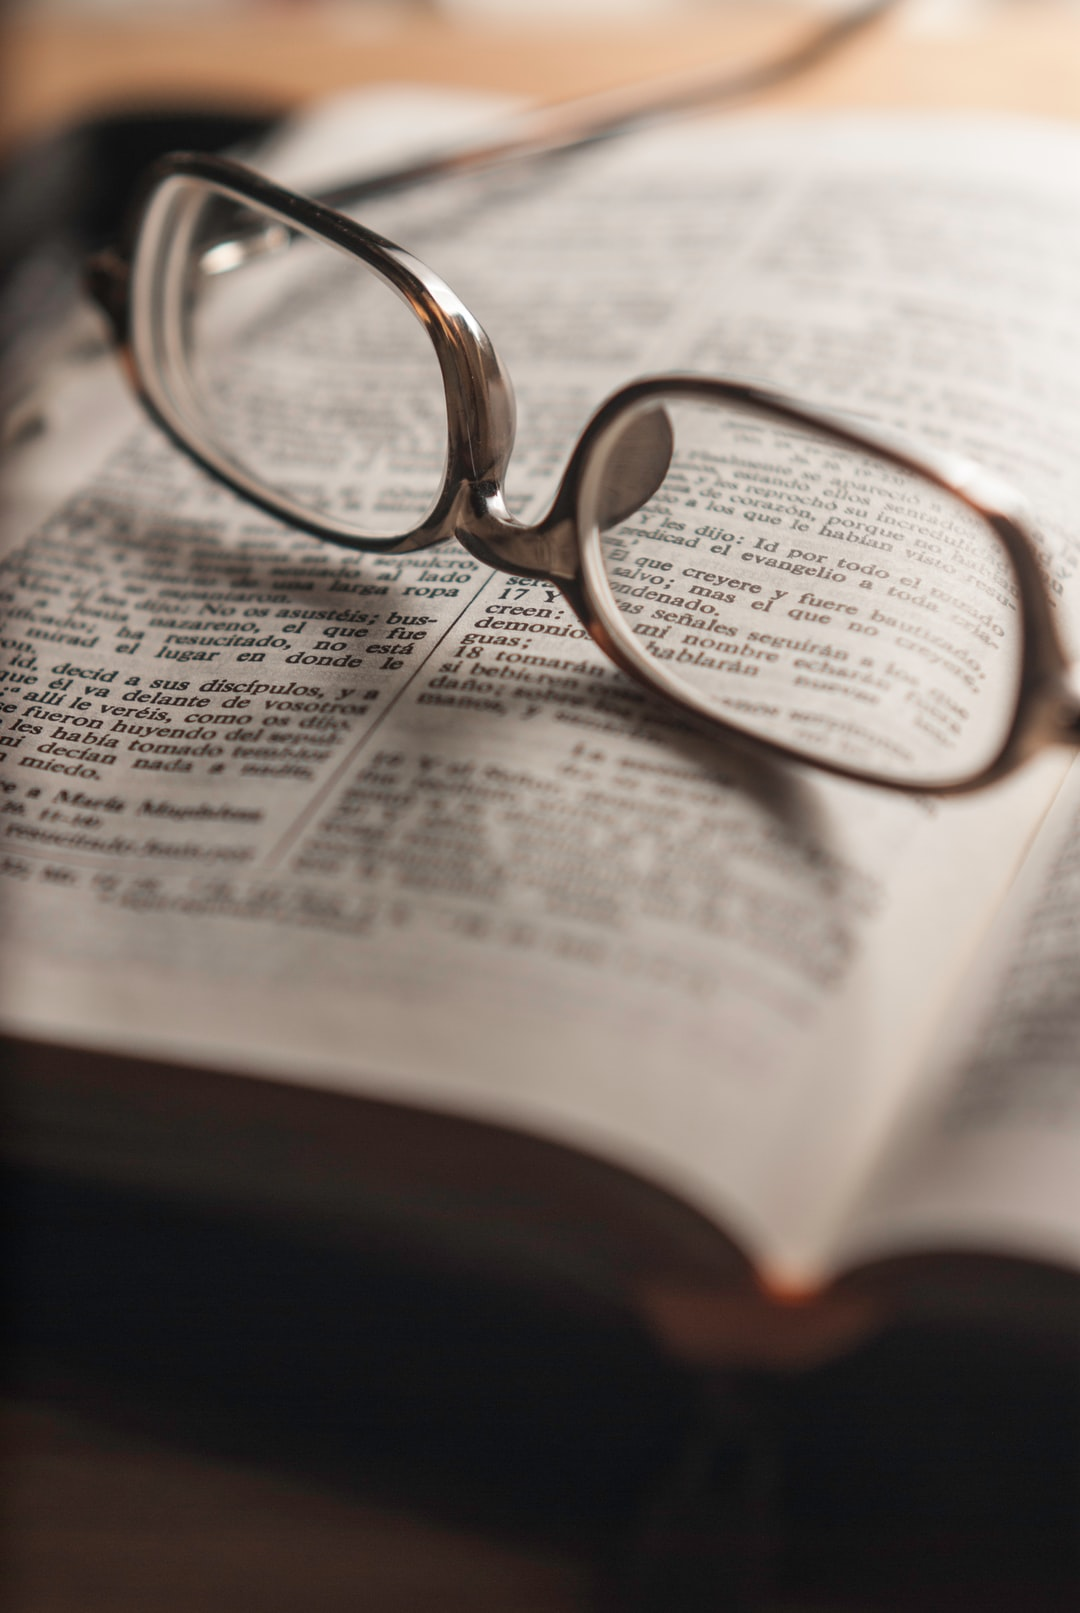 Buscaba representar la Misión del Evangelio, en Marcos 16:15, y puse este texto dentro de los lentes.